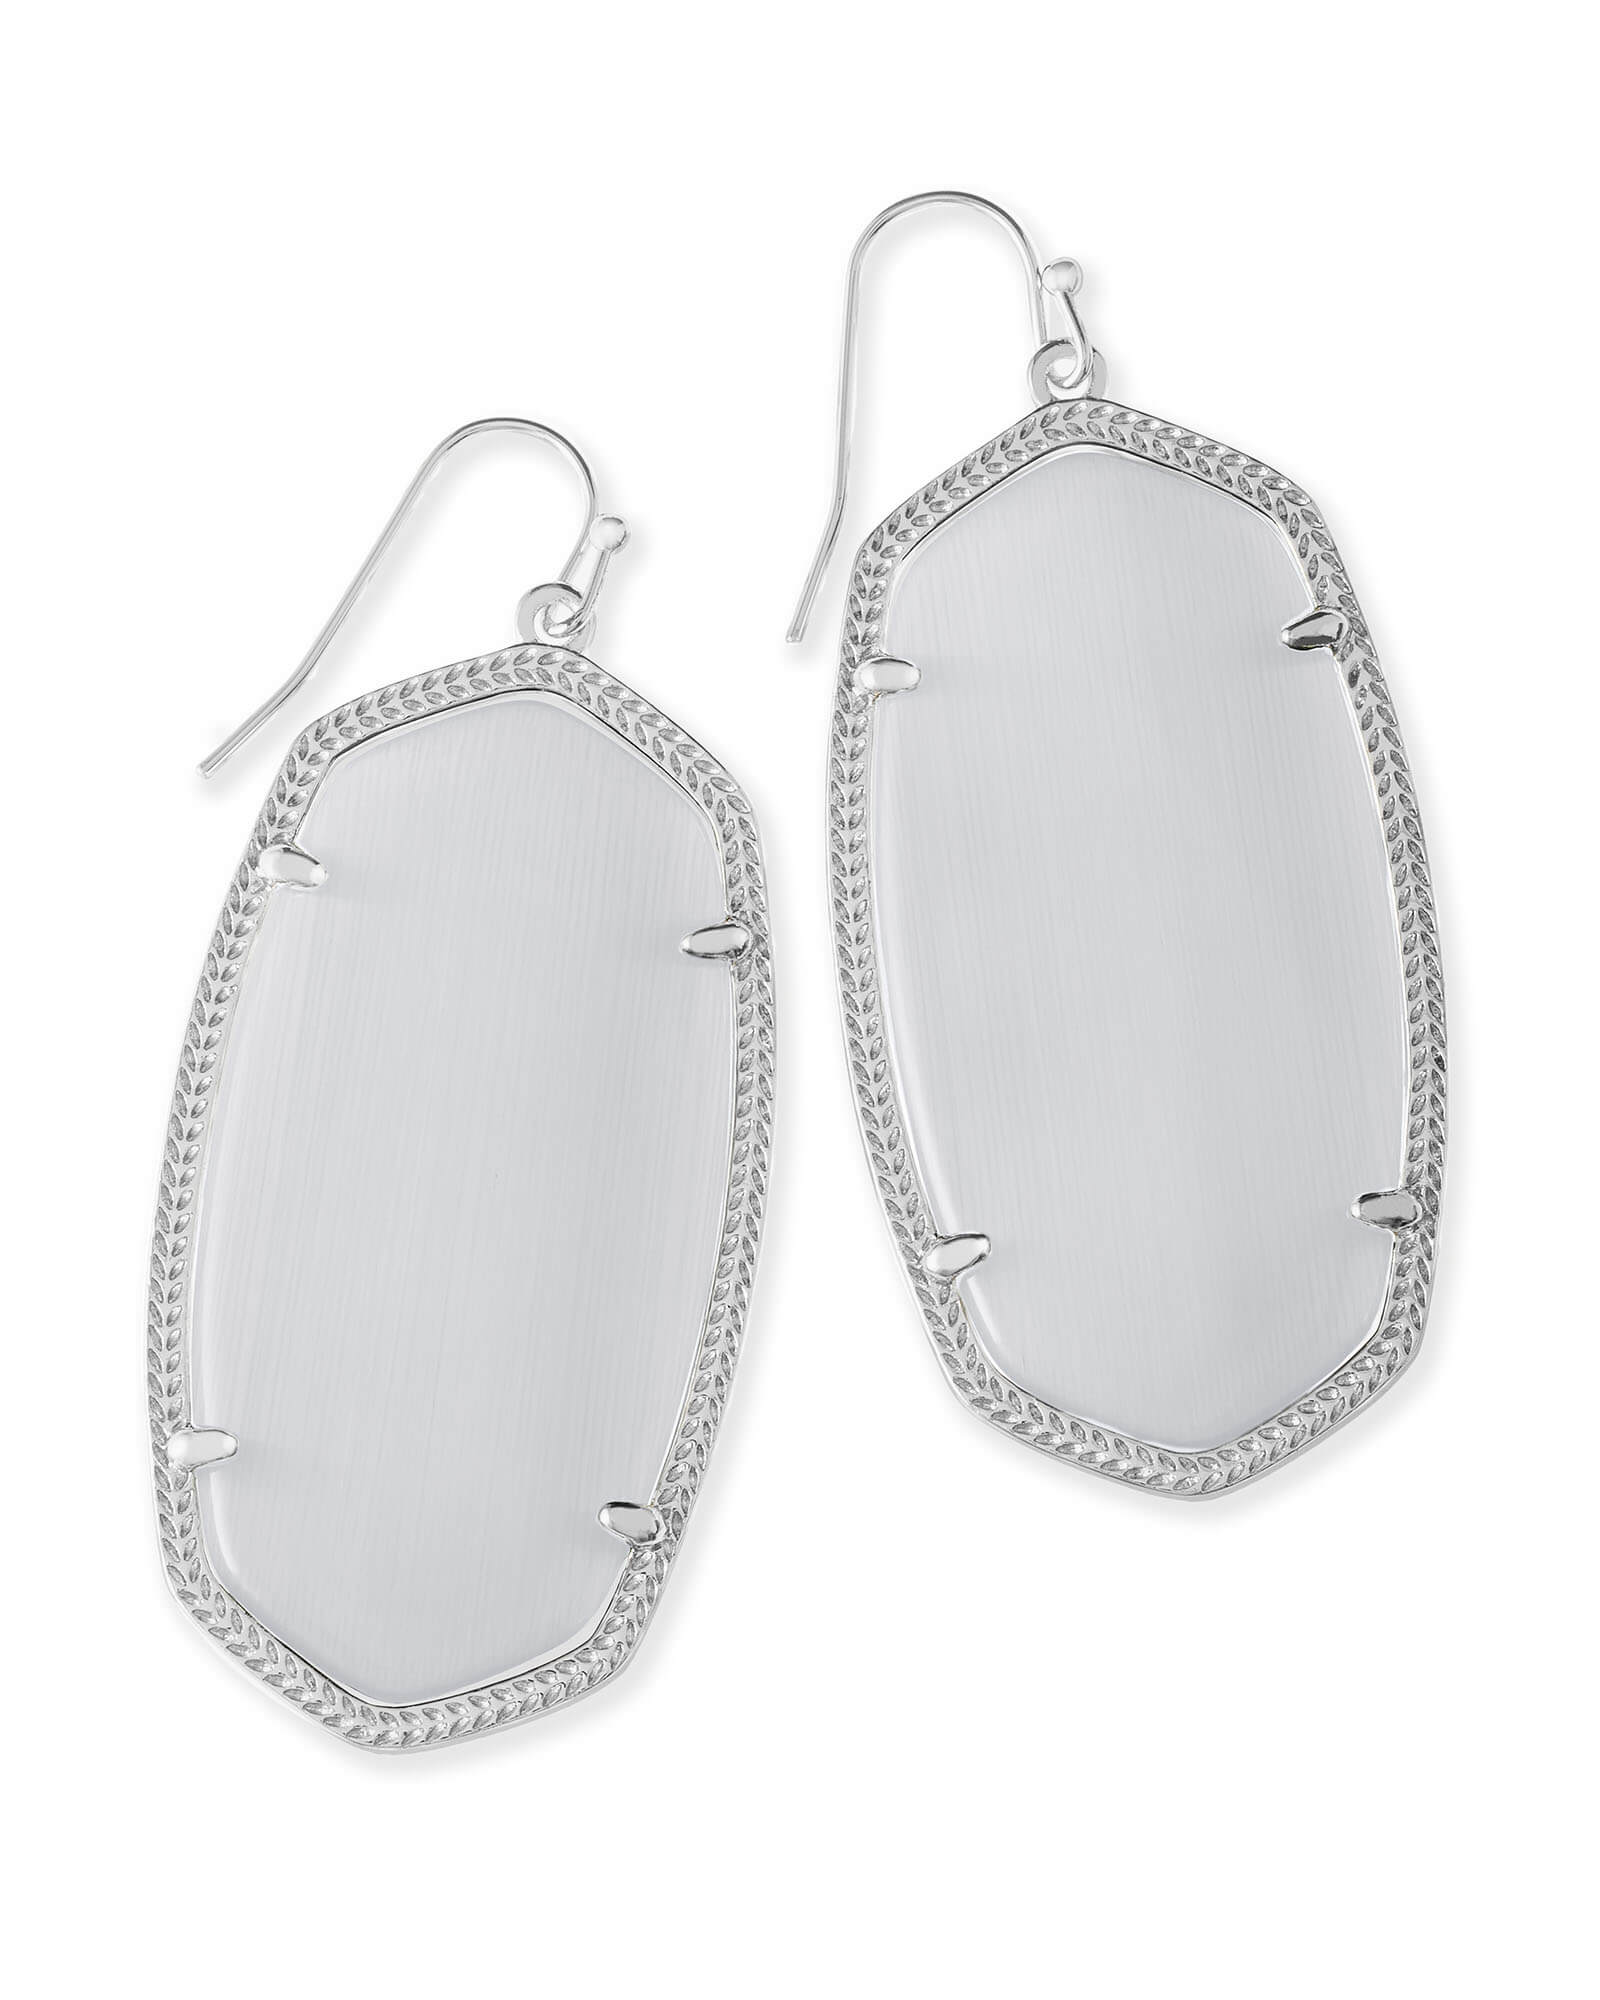 Danielle Earrings in Rhodium